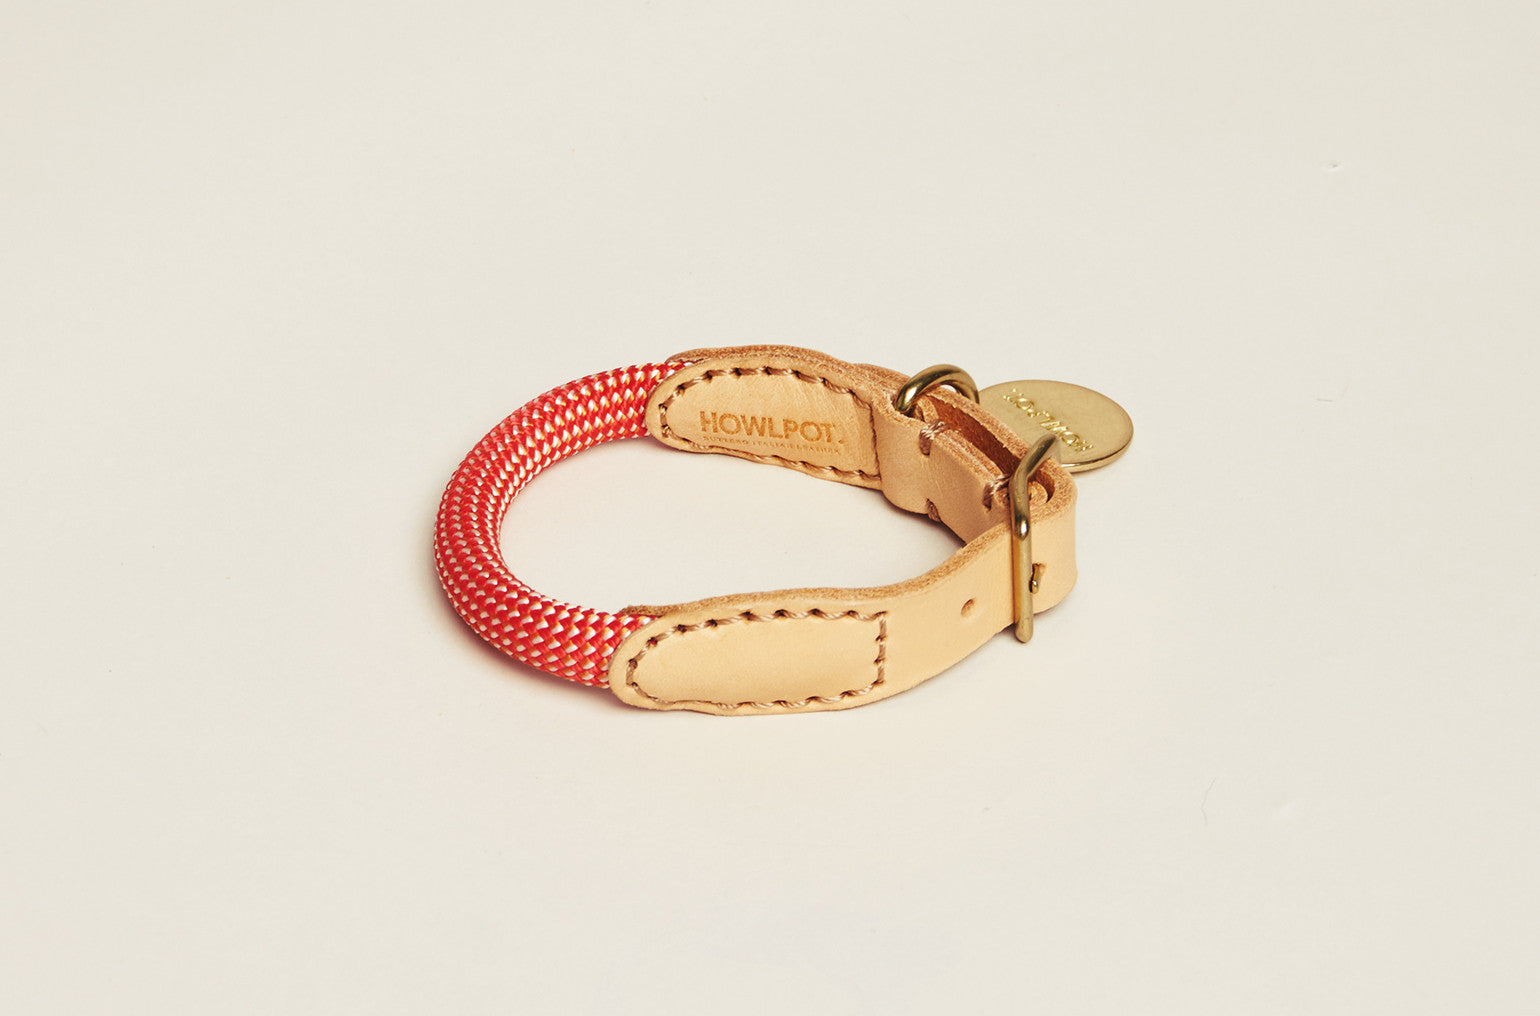 Howlpot Collar in Coral Aid (Extra Small Only)